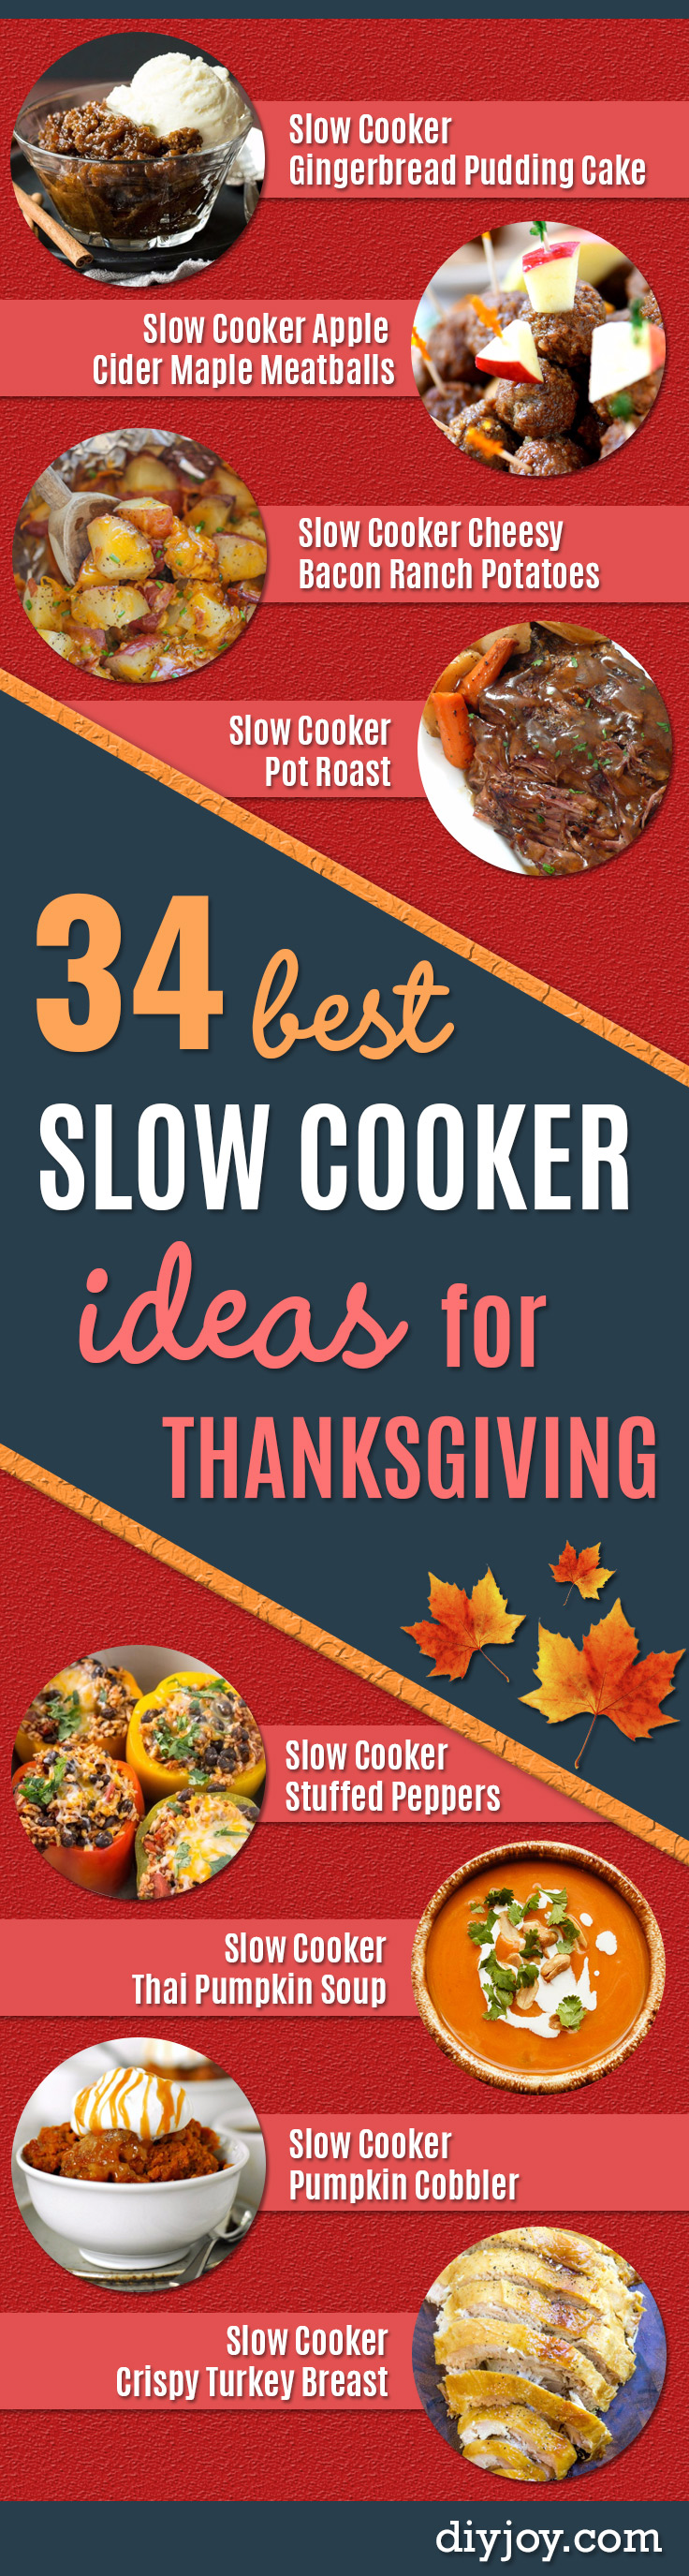 crockpot recipes thanksgiving- slow cooker soups, crockpot turkey, Stews, Desserts, Dips, Sides and Vegetable Recipe Ideas for Your Crock Pot -last minute thanksgiving recipe idea